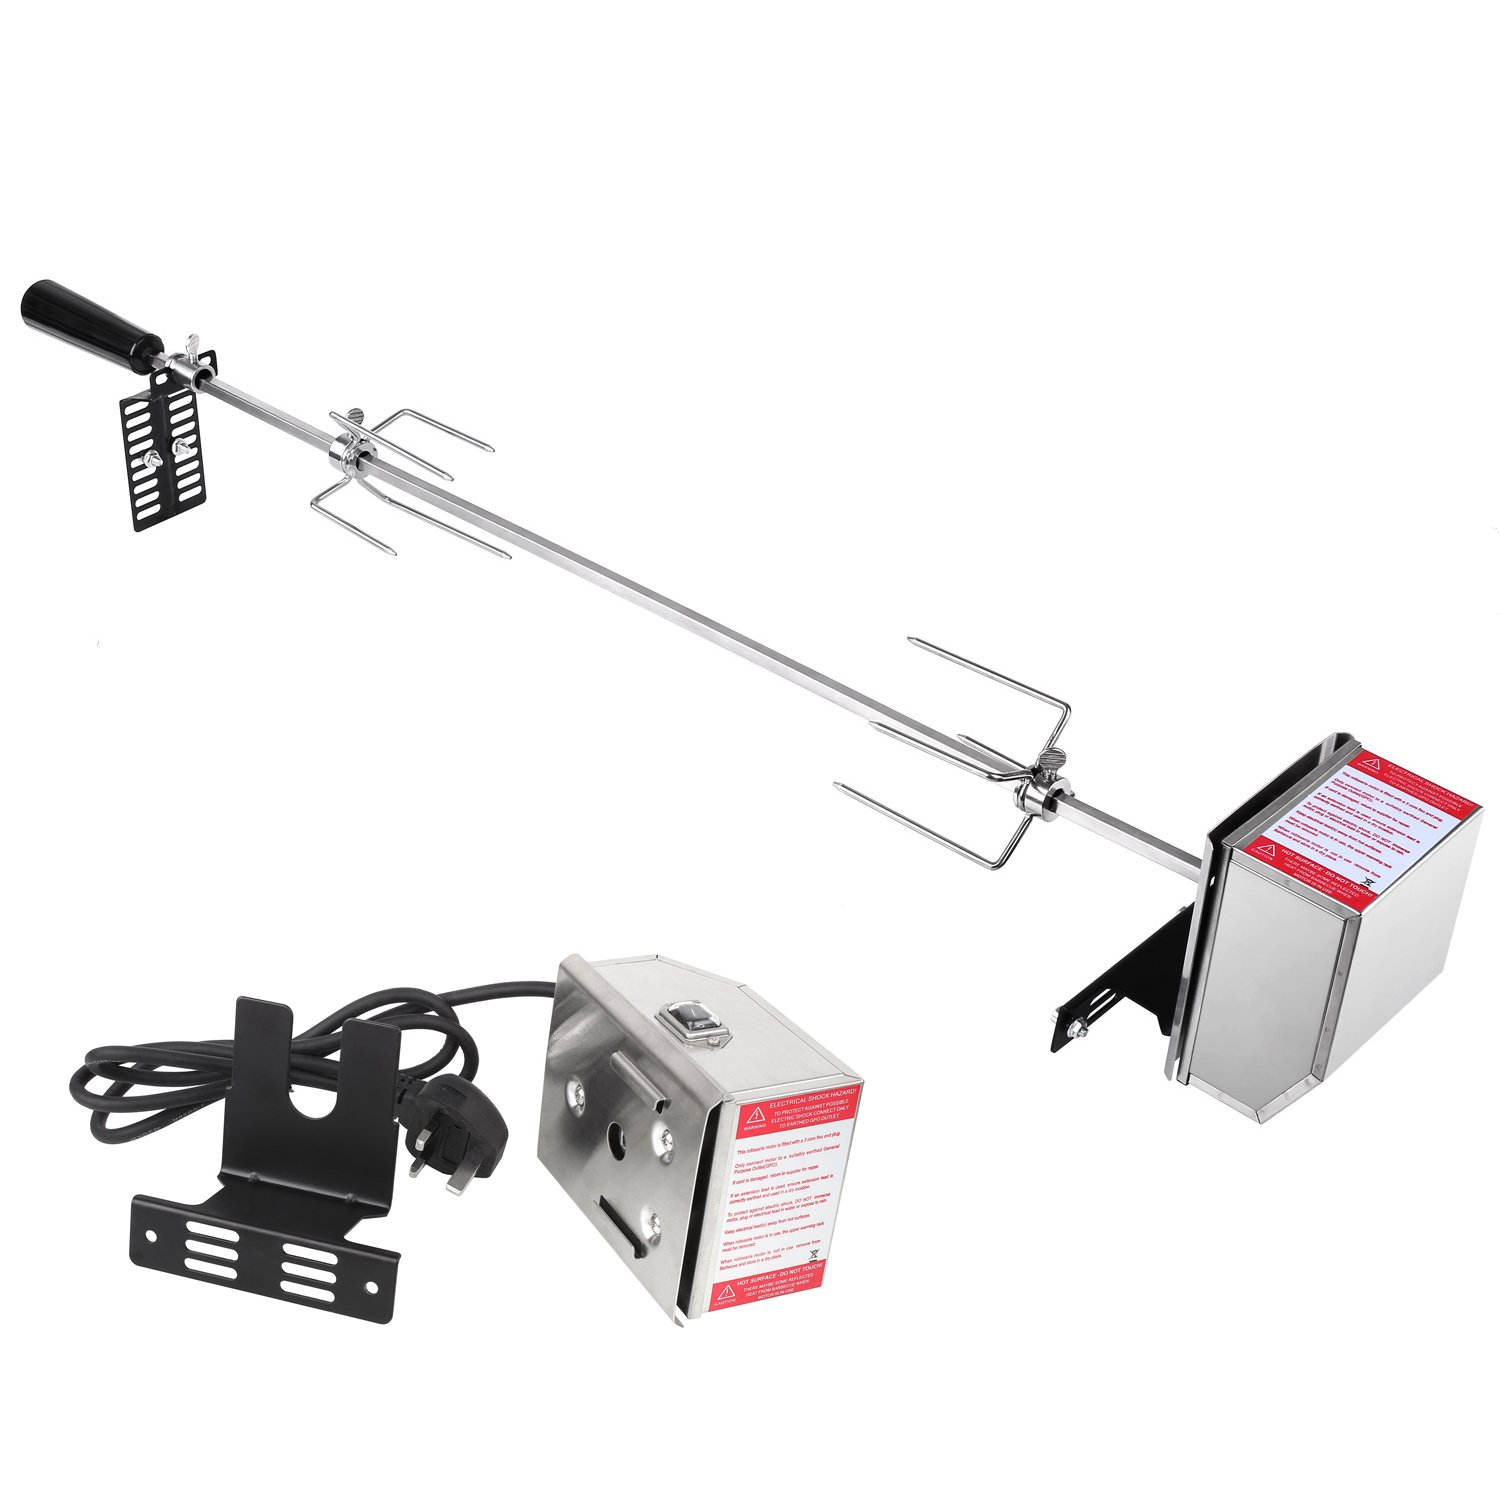 MVPOWER Universal BBQ Rotisserie Kit,Stainless Steel Grill Roast Meat Rod Spit,240V Electric Operated